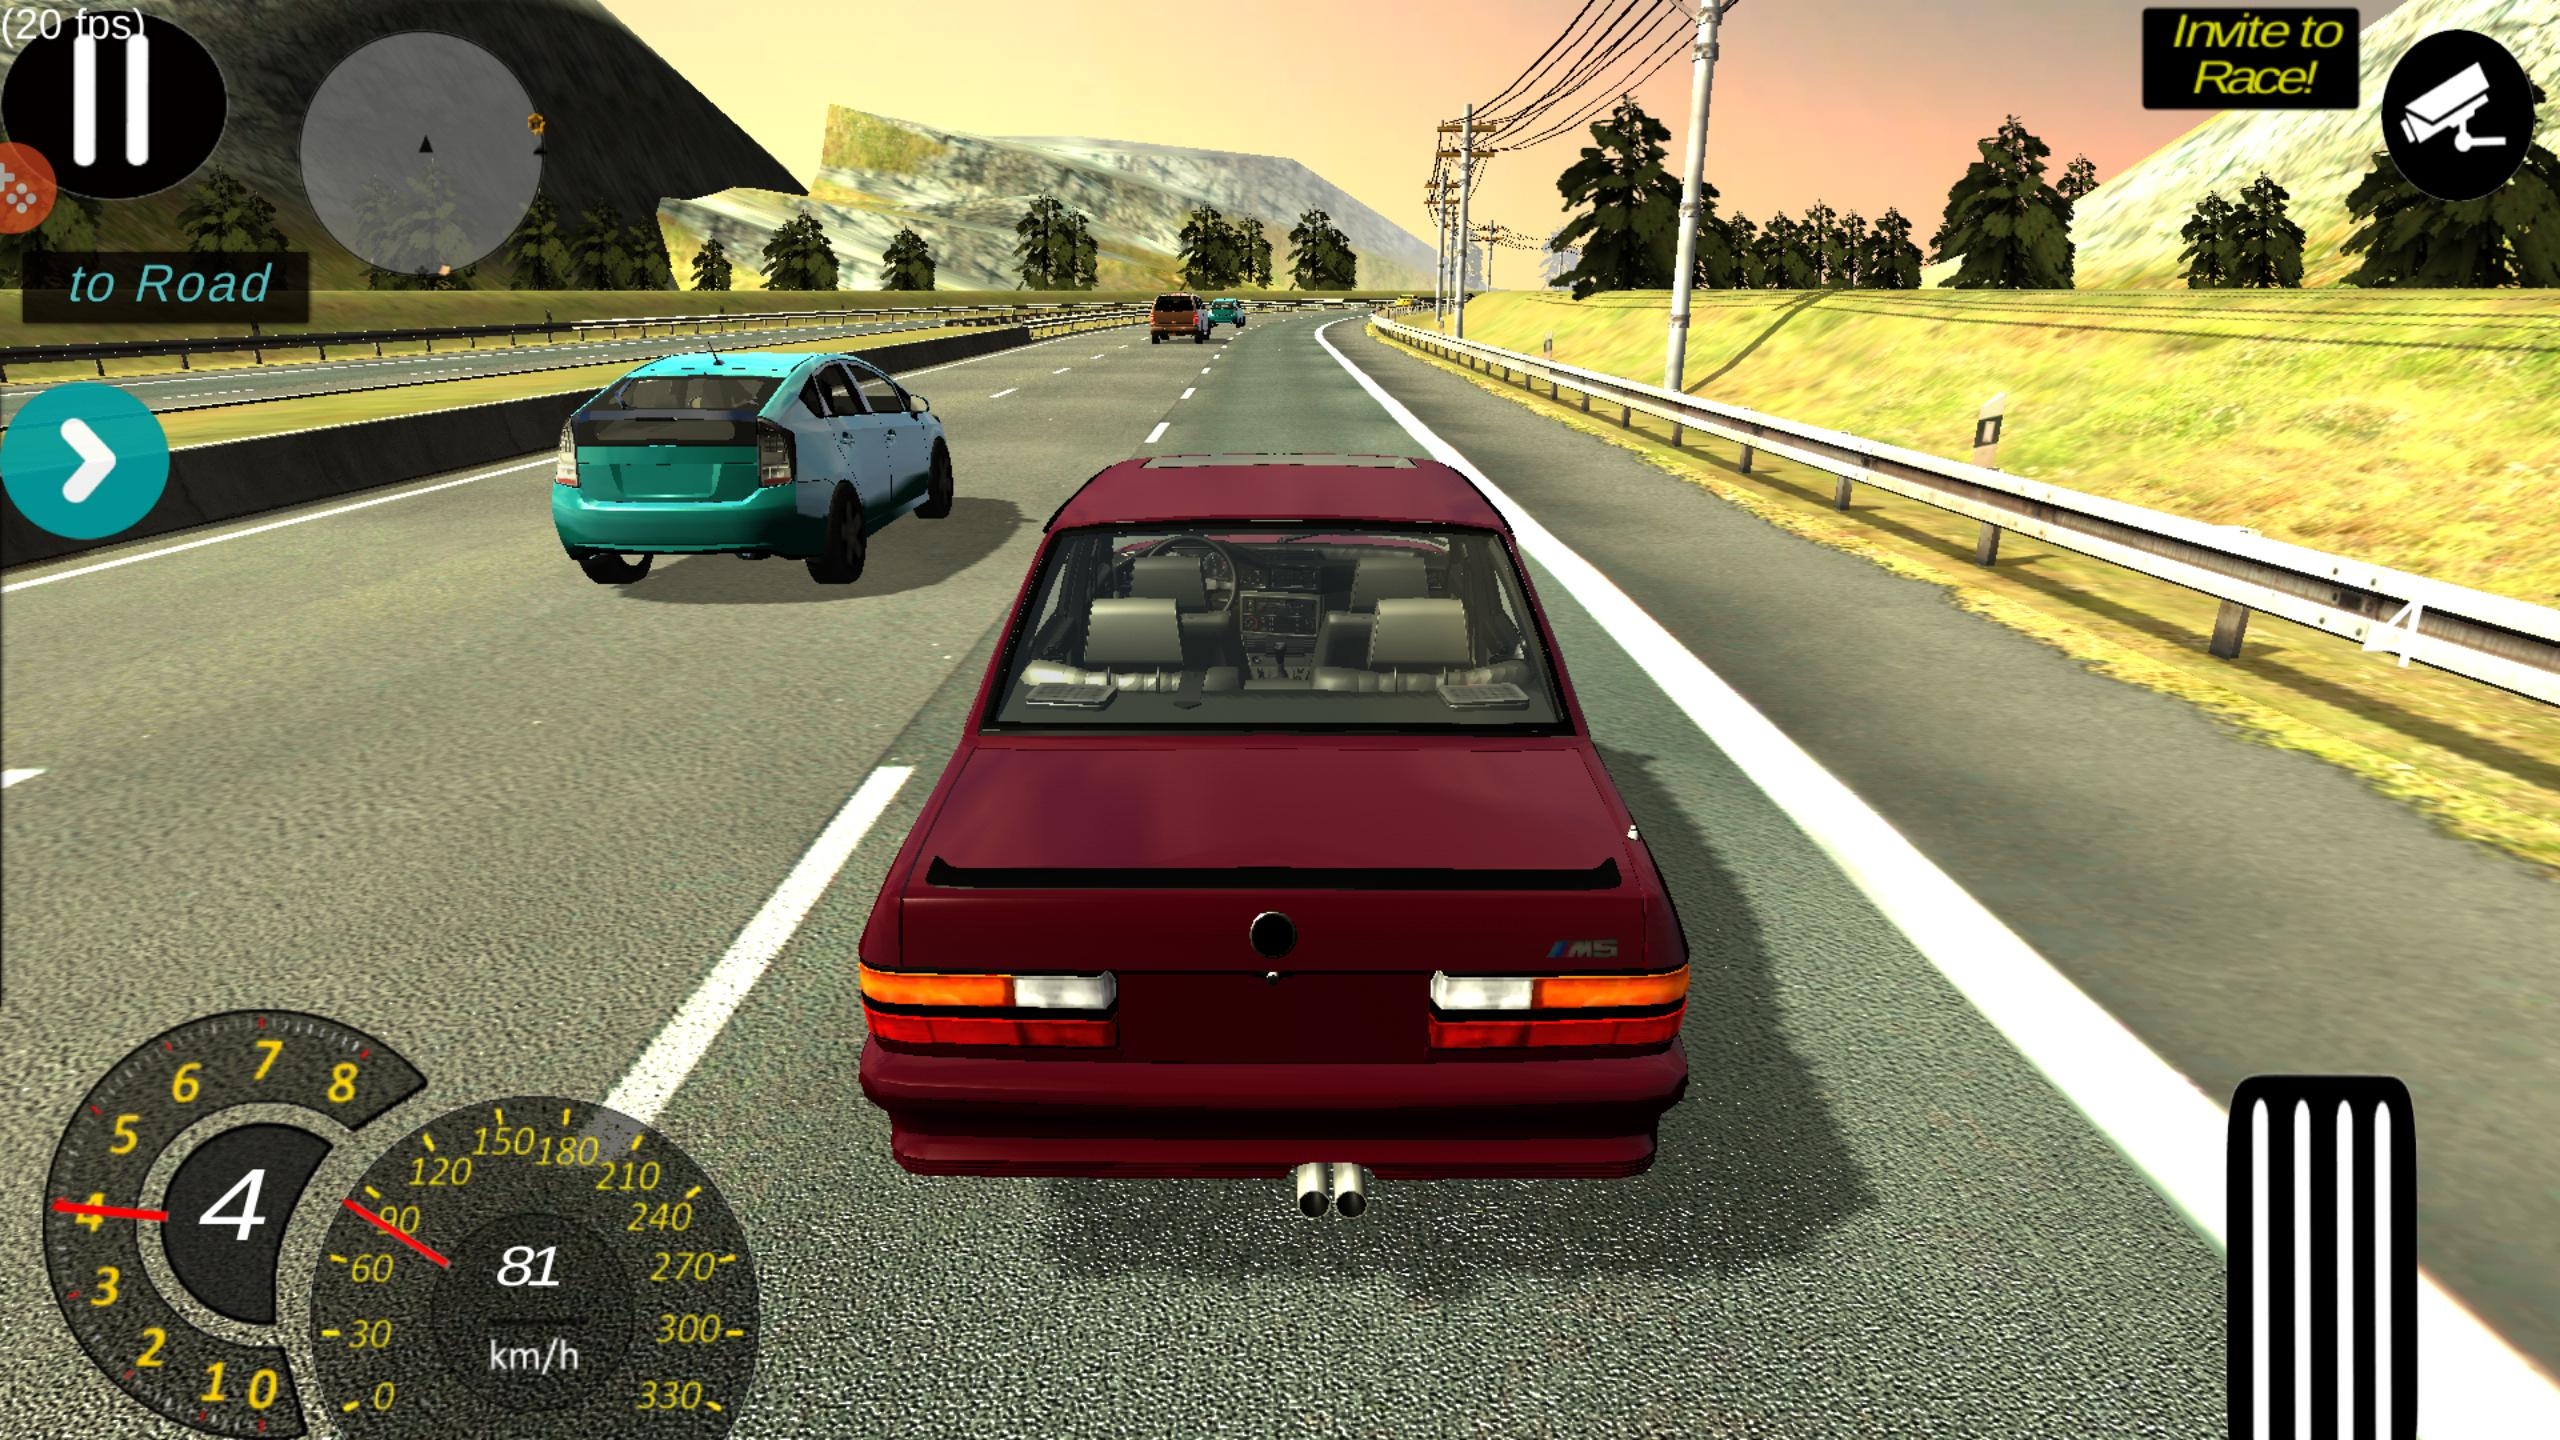 10 most popular parking games for android.